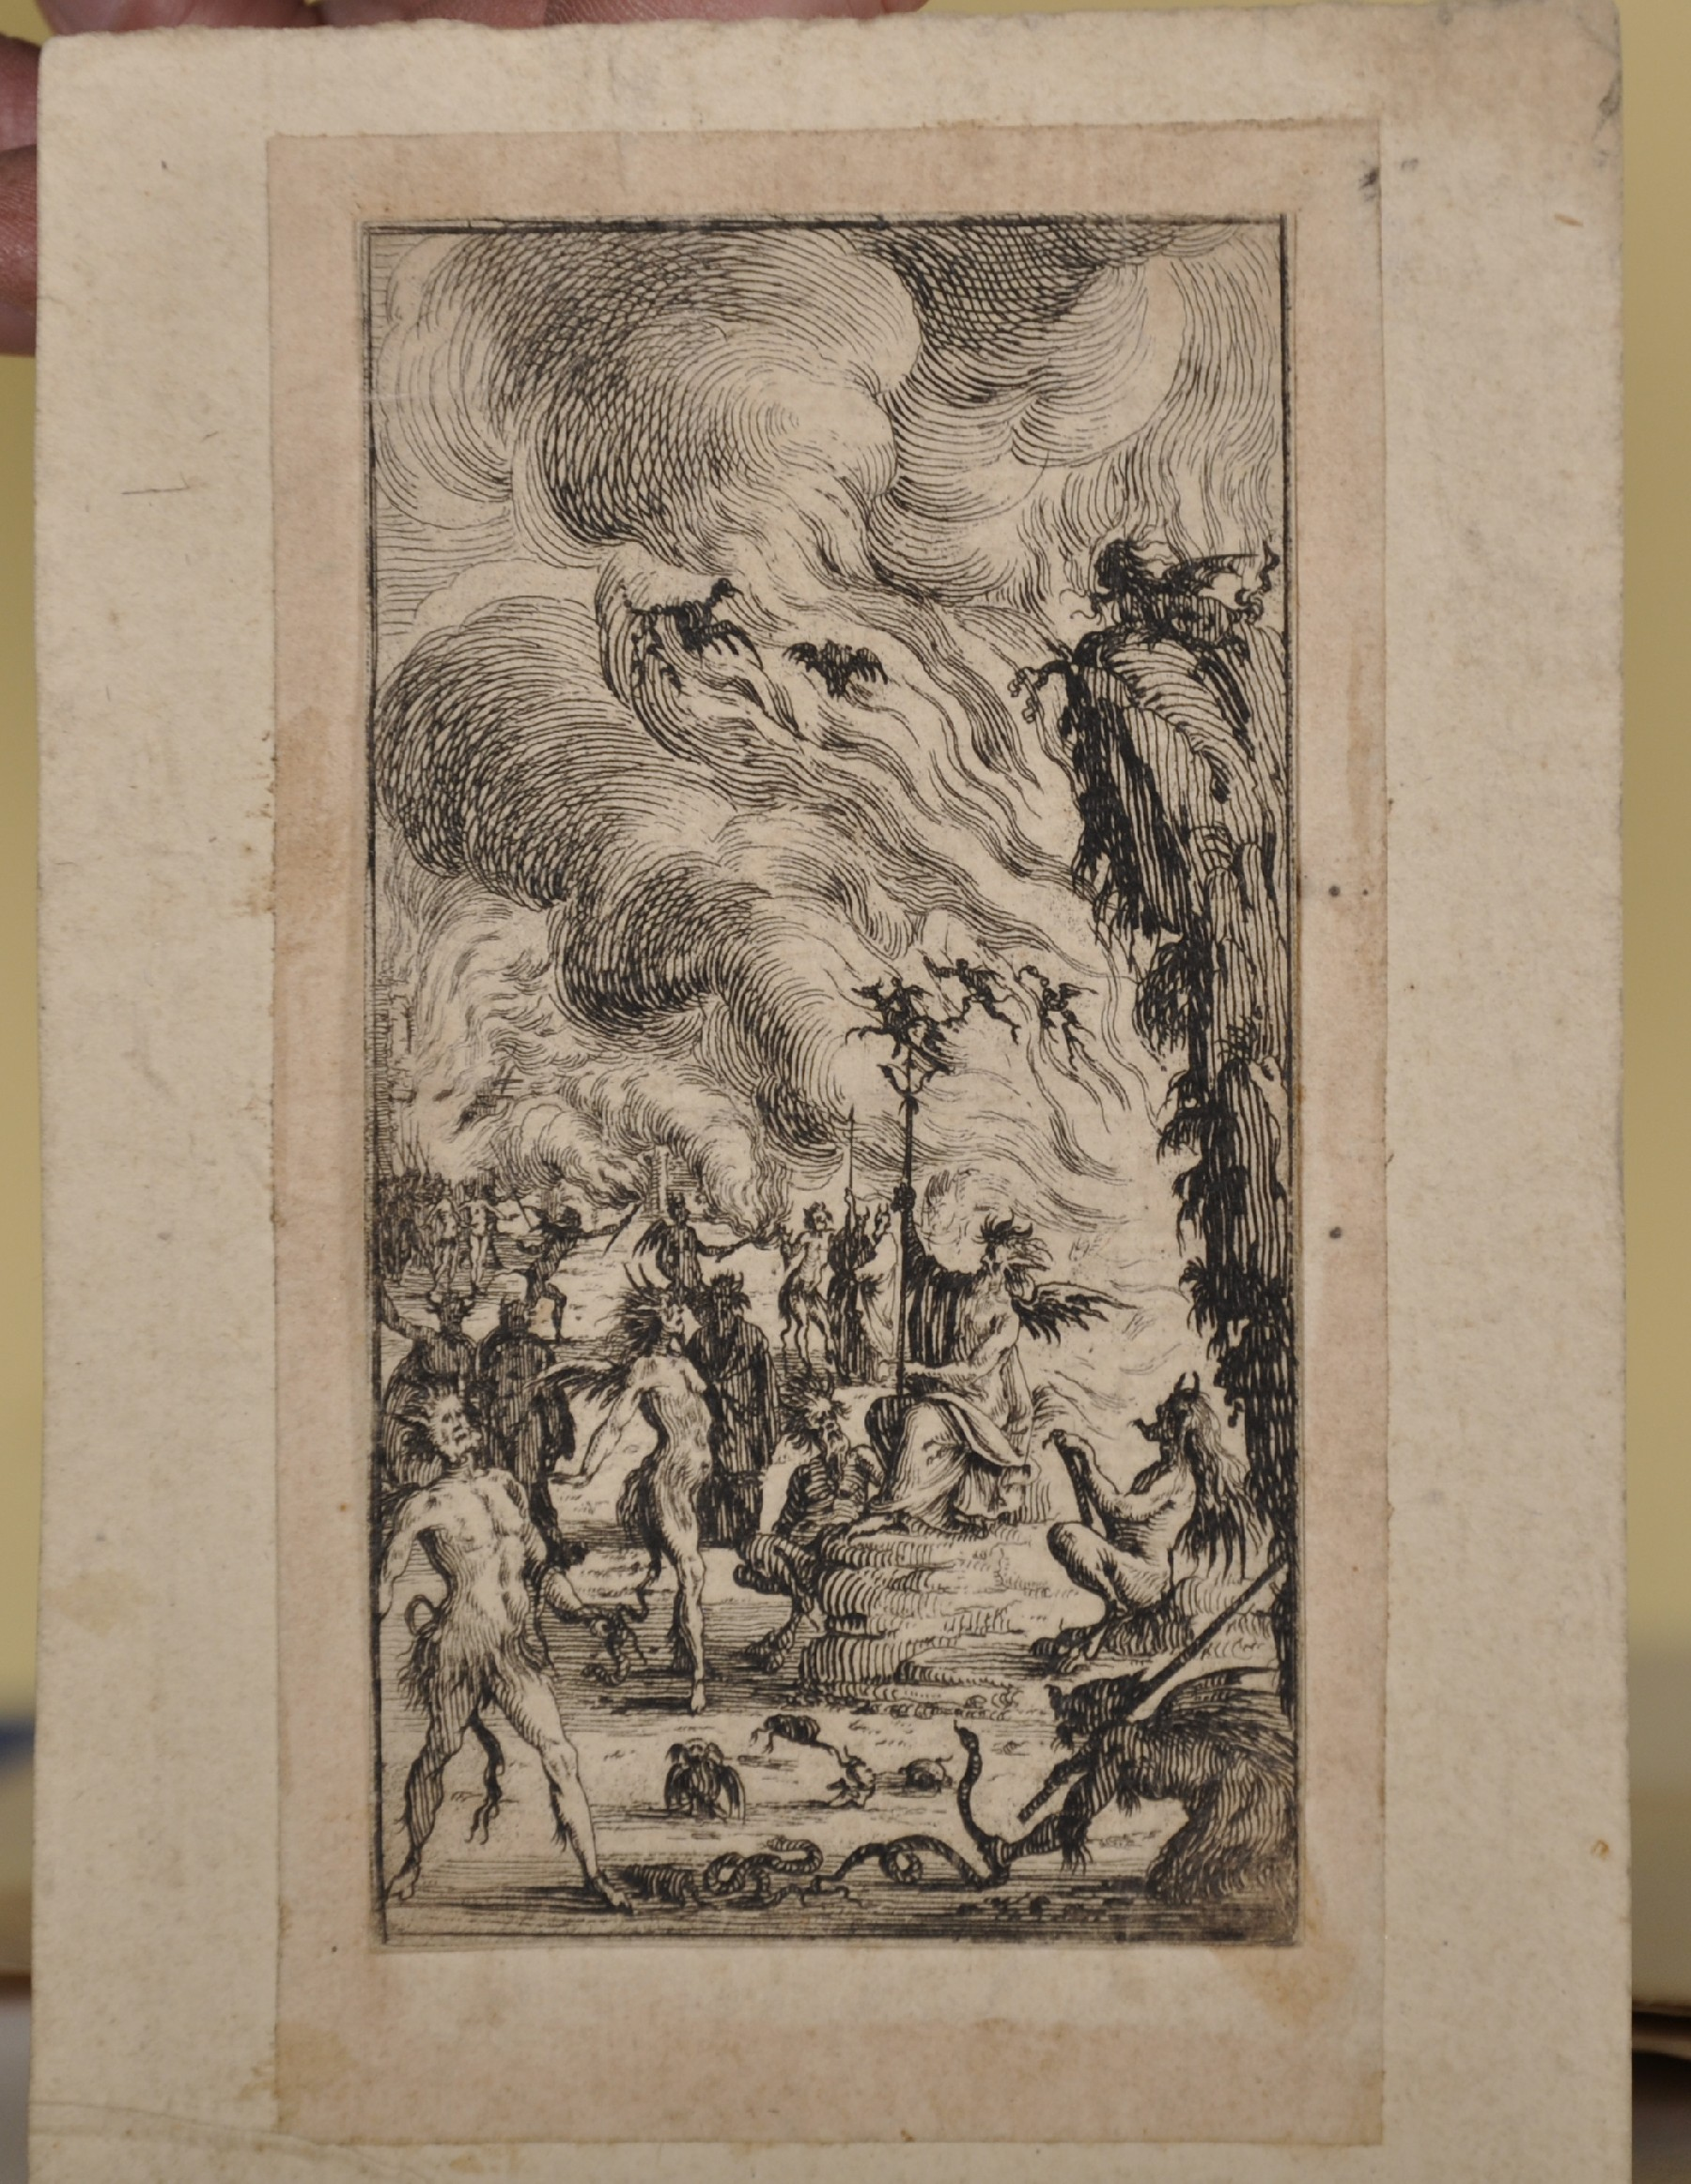 """18th Century Italian School. Cupids with an Elephant, Engraving, Unframed, 6"""" x 7.5"""", and Seven - Image 7 of 9"""